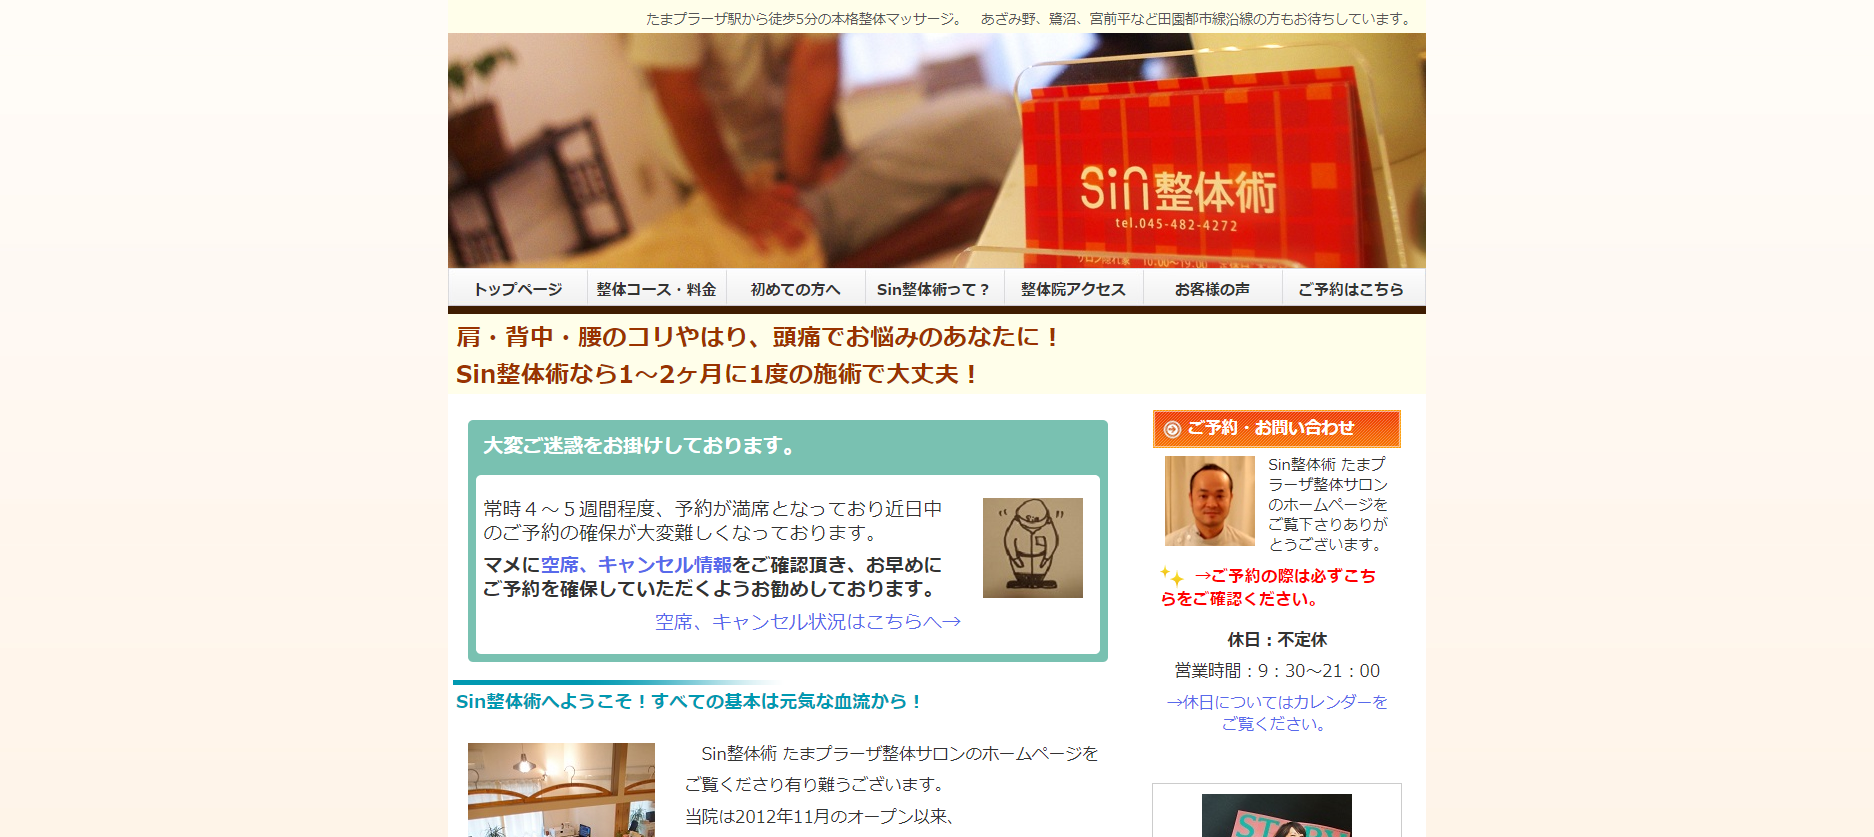 Sin整体術のサムネイル